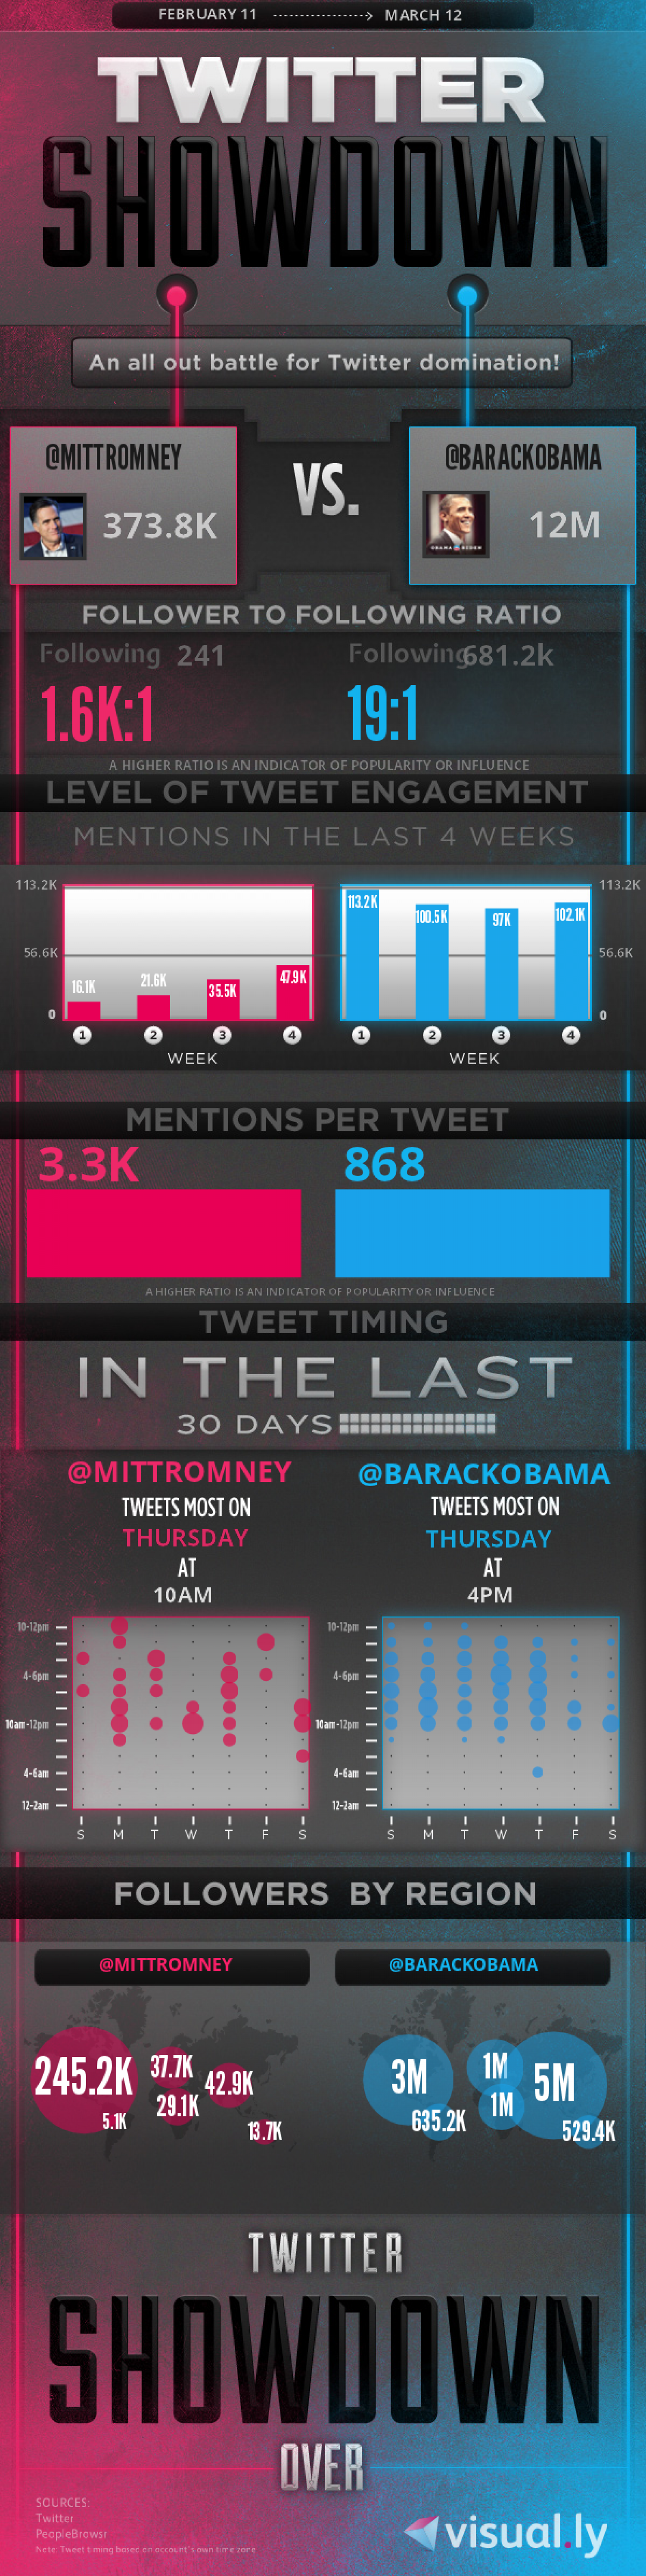 Twitter Showdown: MittRomney vs. BarackObama Infographic